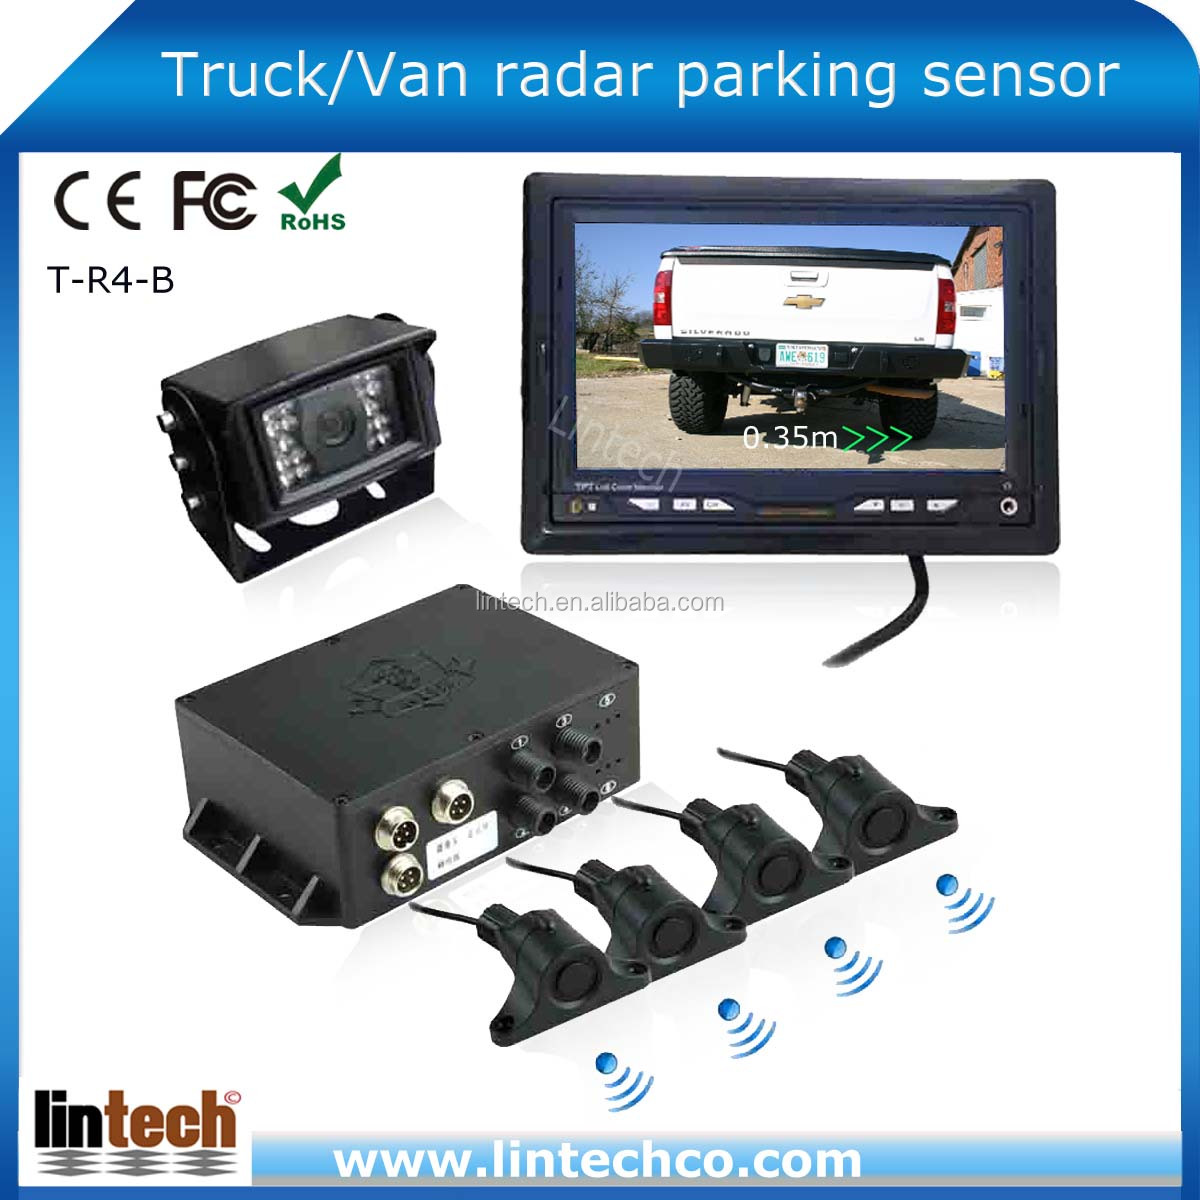 Long Range Car/Bus/Vehicle/Trailer/Truck Parking Sensor With 7 Inch Lcd Display